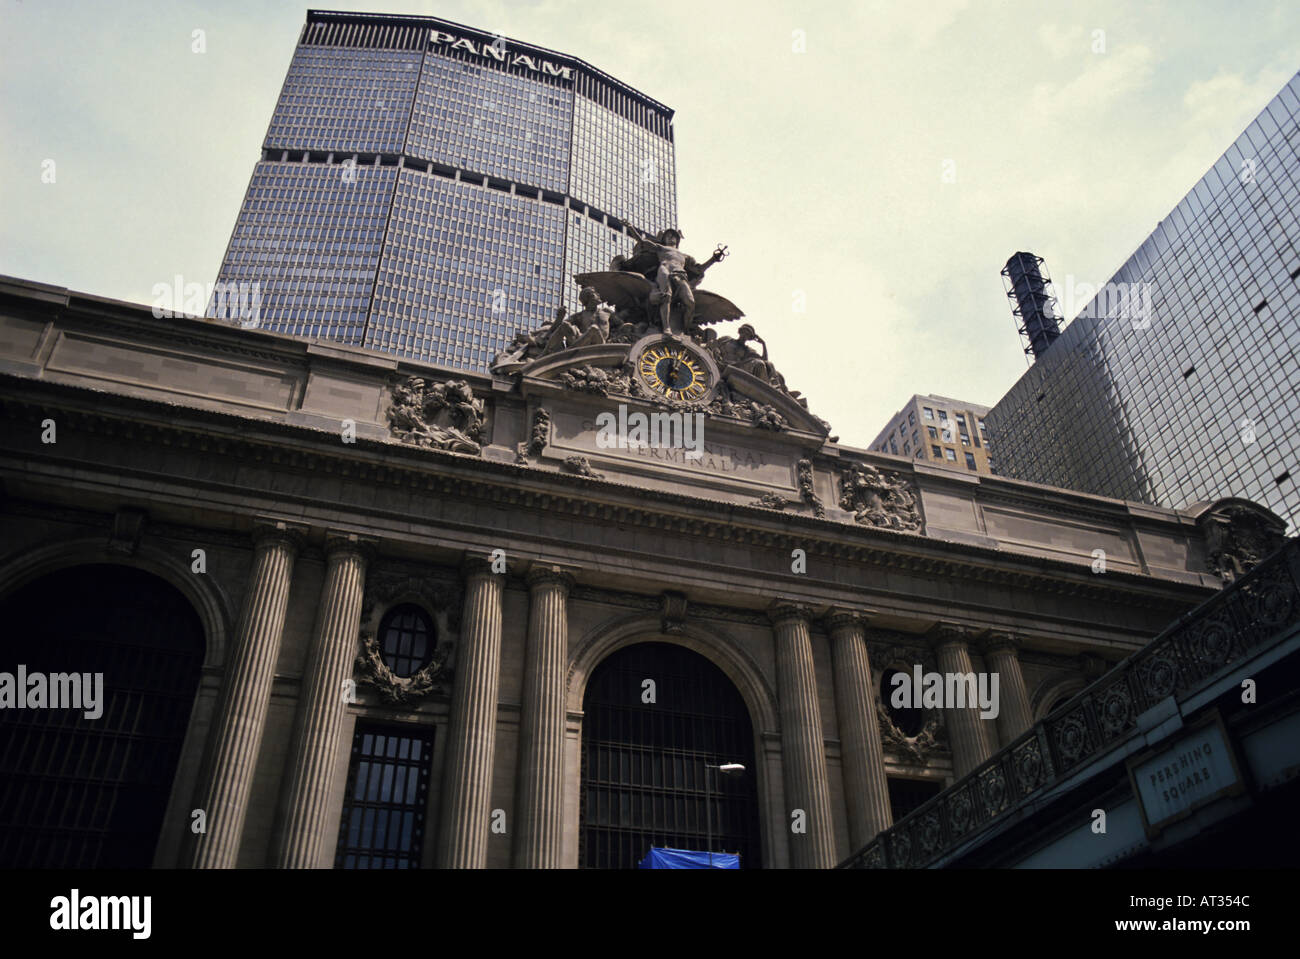 Former Pan Am Building High Resolution Stock Photography and ...